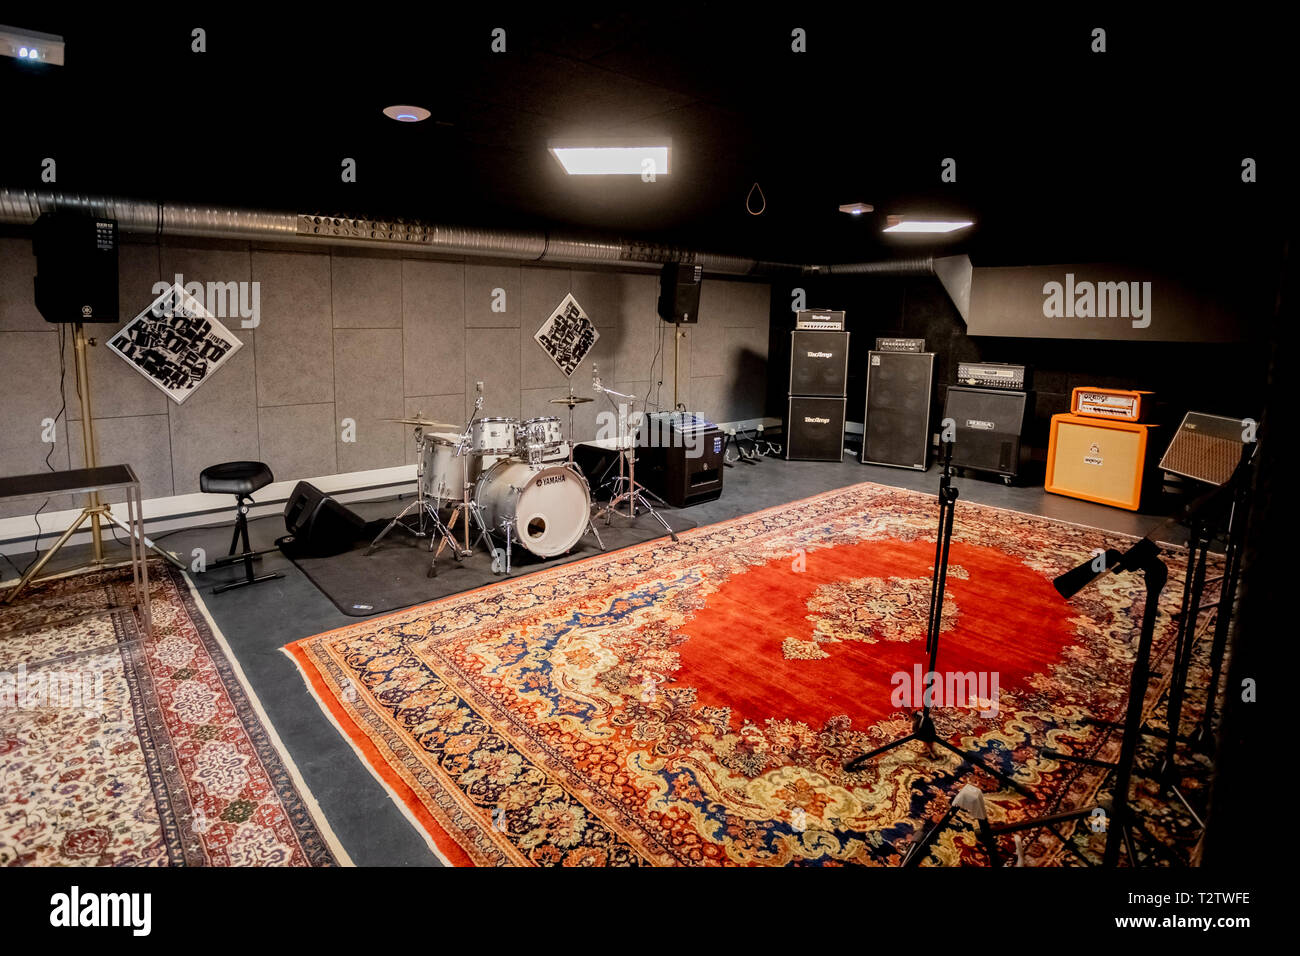 Music Rehearsal Room High Resolution Stock Photography And Images Alamy